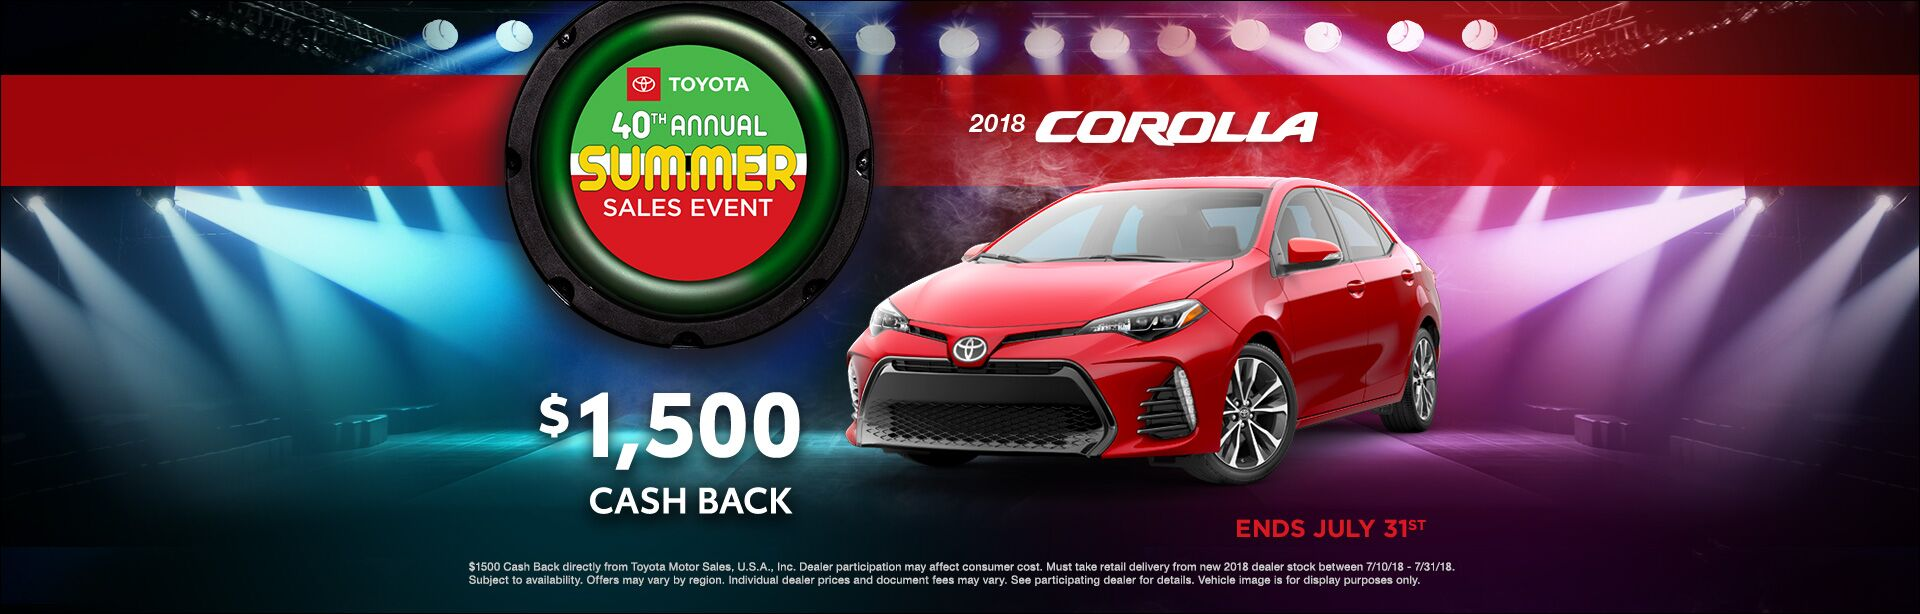 Toyota Summer Sales Event Corolla Cash Back